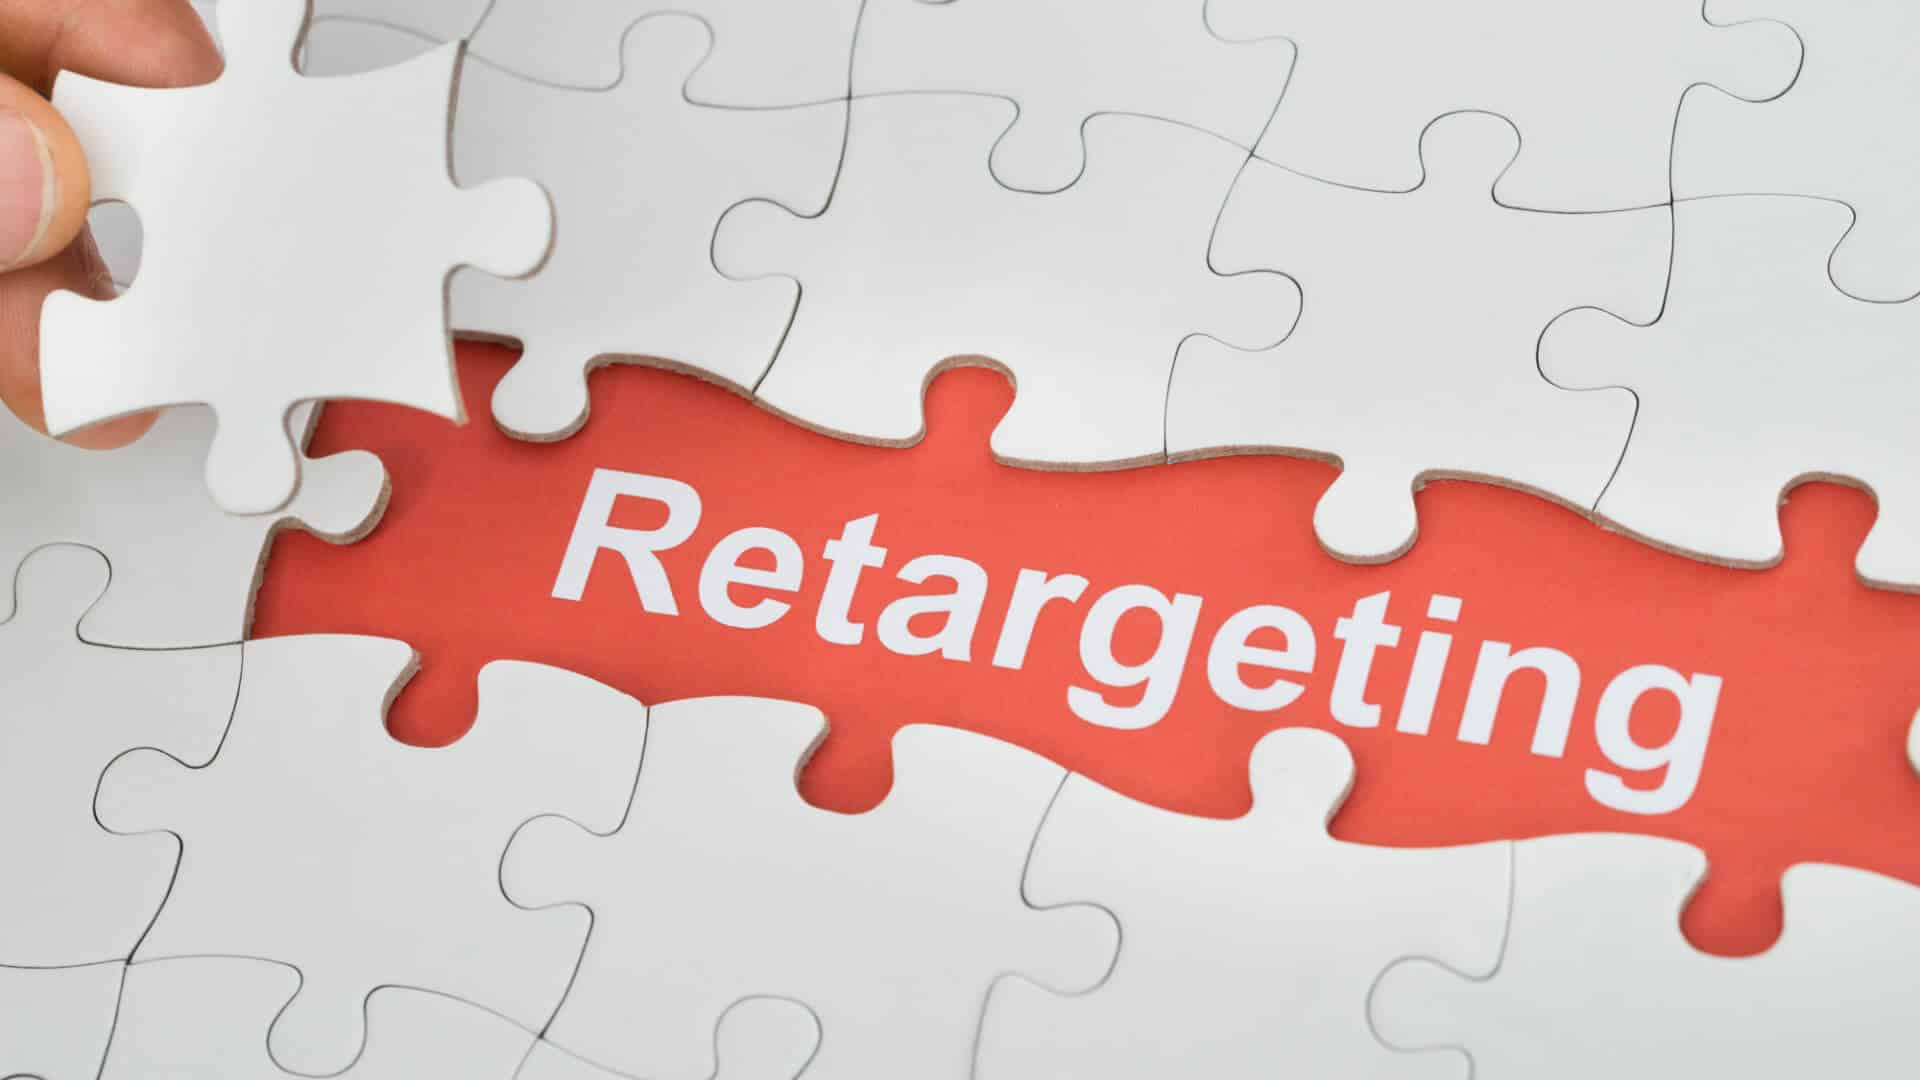 Retargeting Somebody Who's Not on Your List